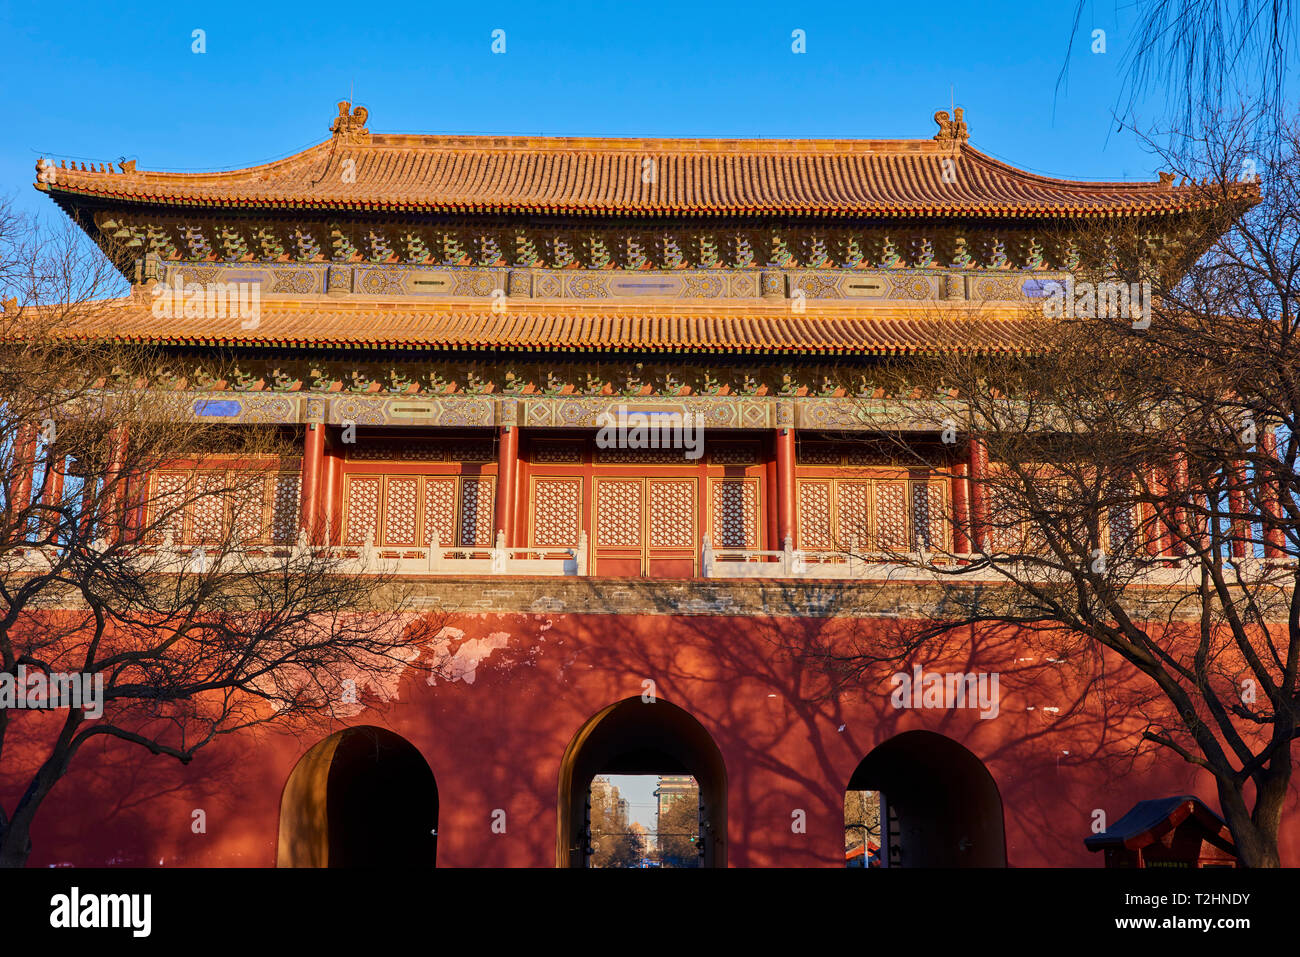 The East Glorious Gate of the Forbidden City, Beijing, China - Stock Image